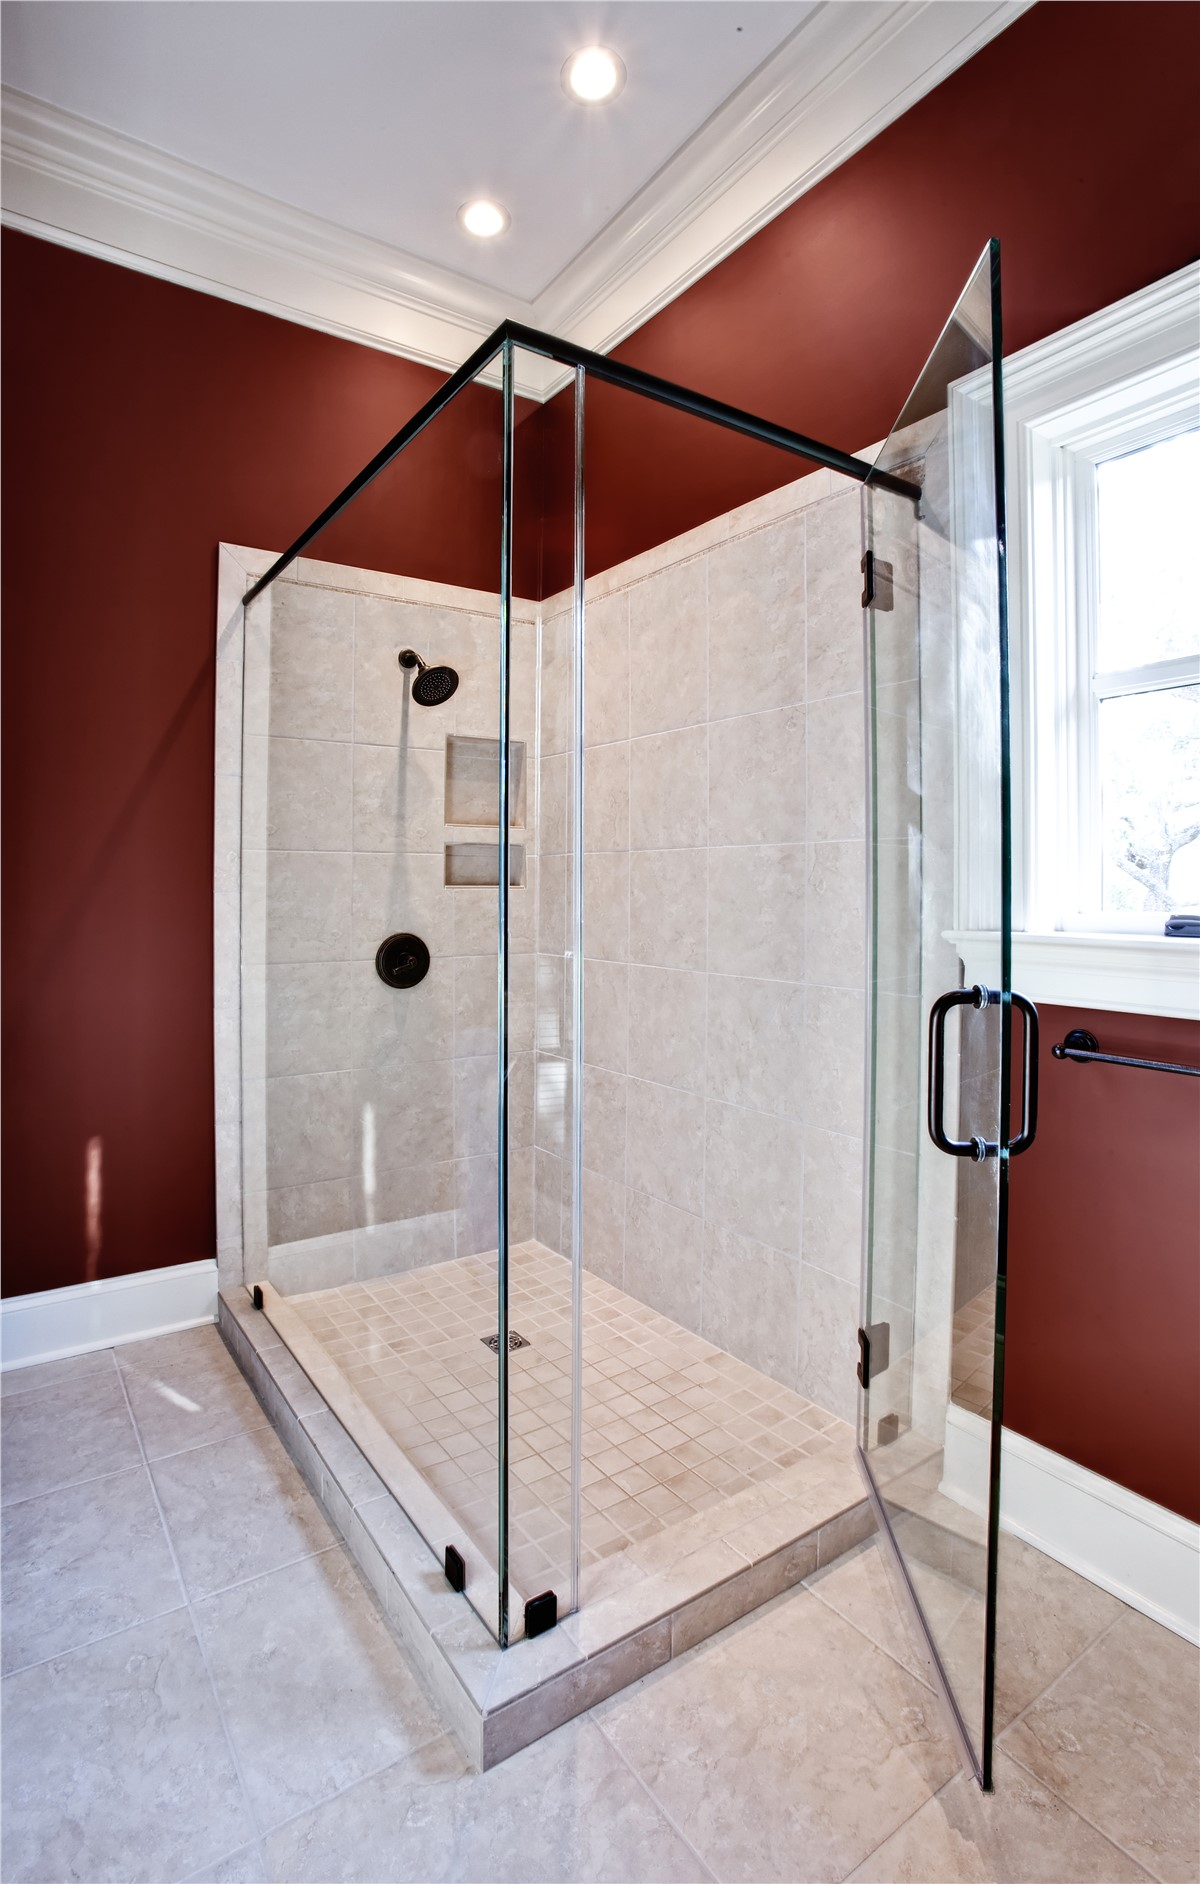 Houston Shower Replacement | Texas Replacement Showers | Texas ...